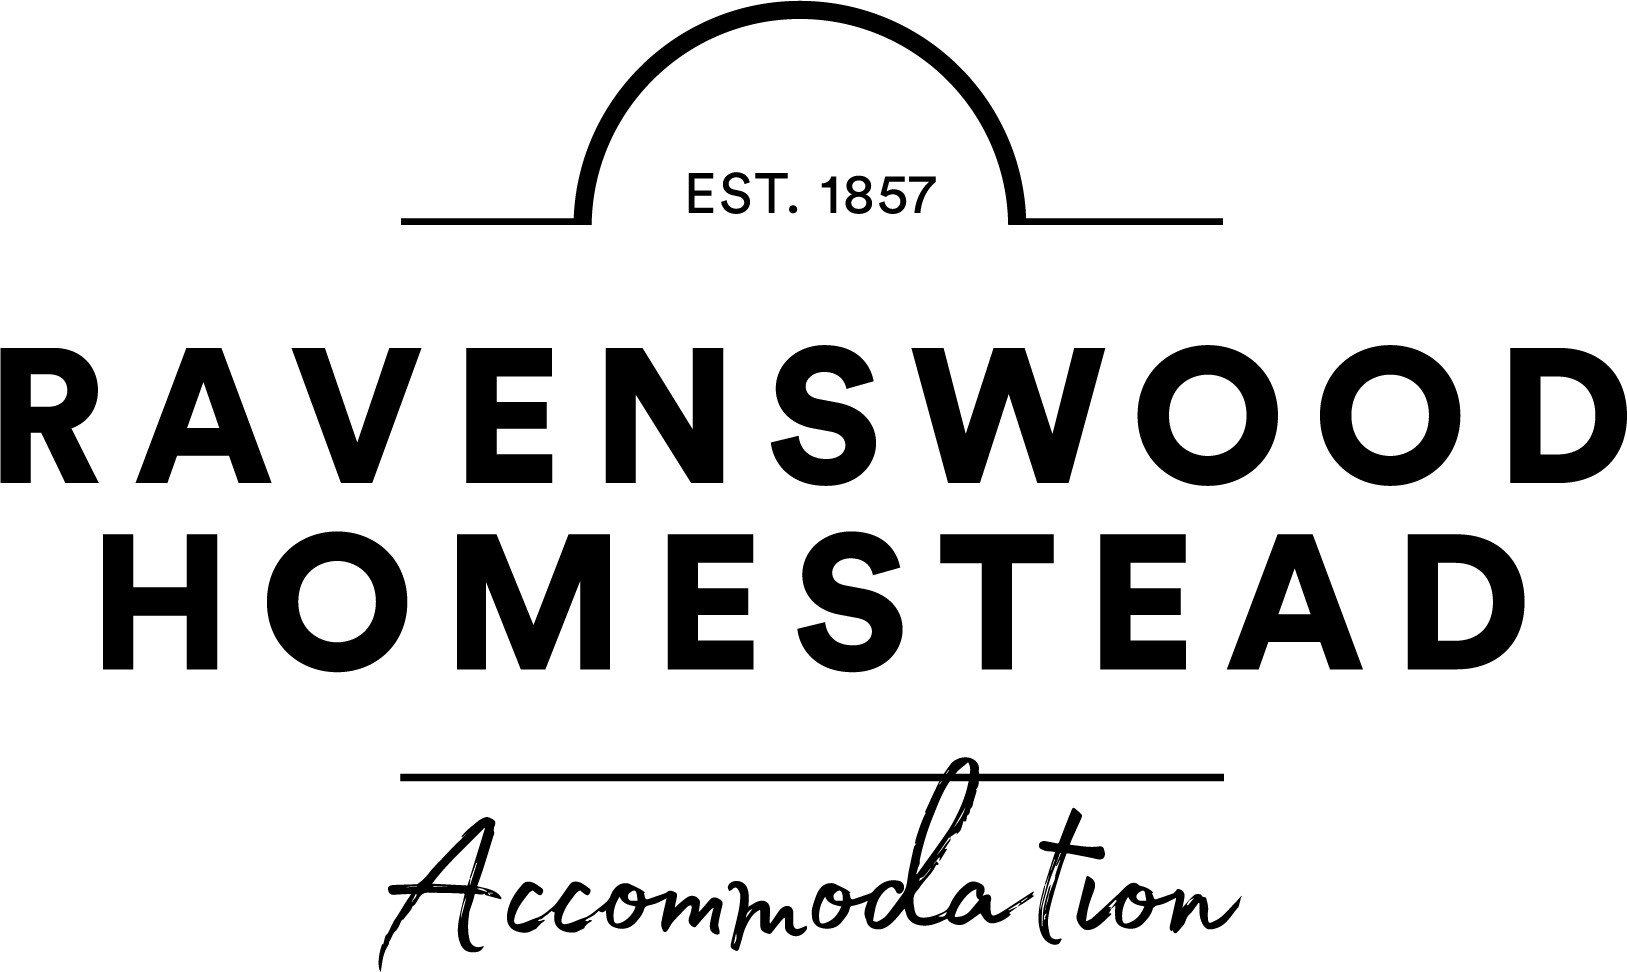 Ravenswood Homestead